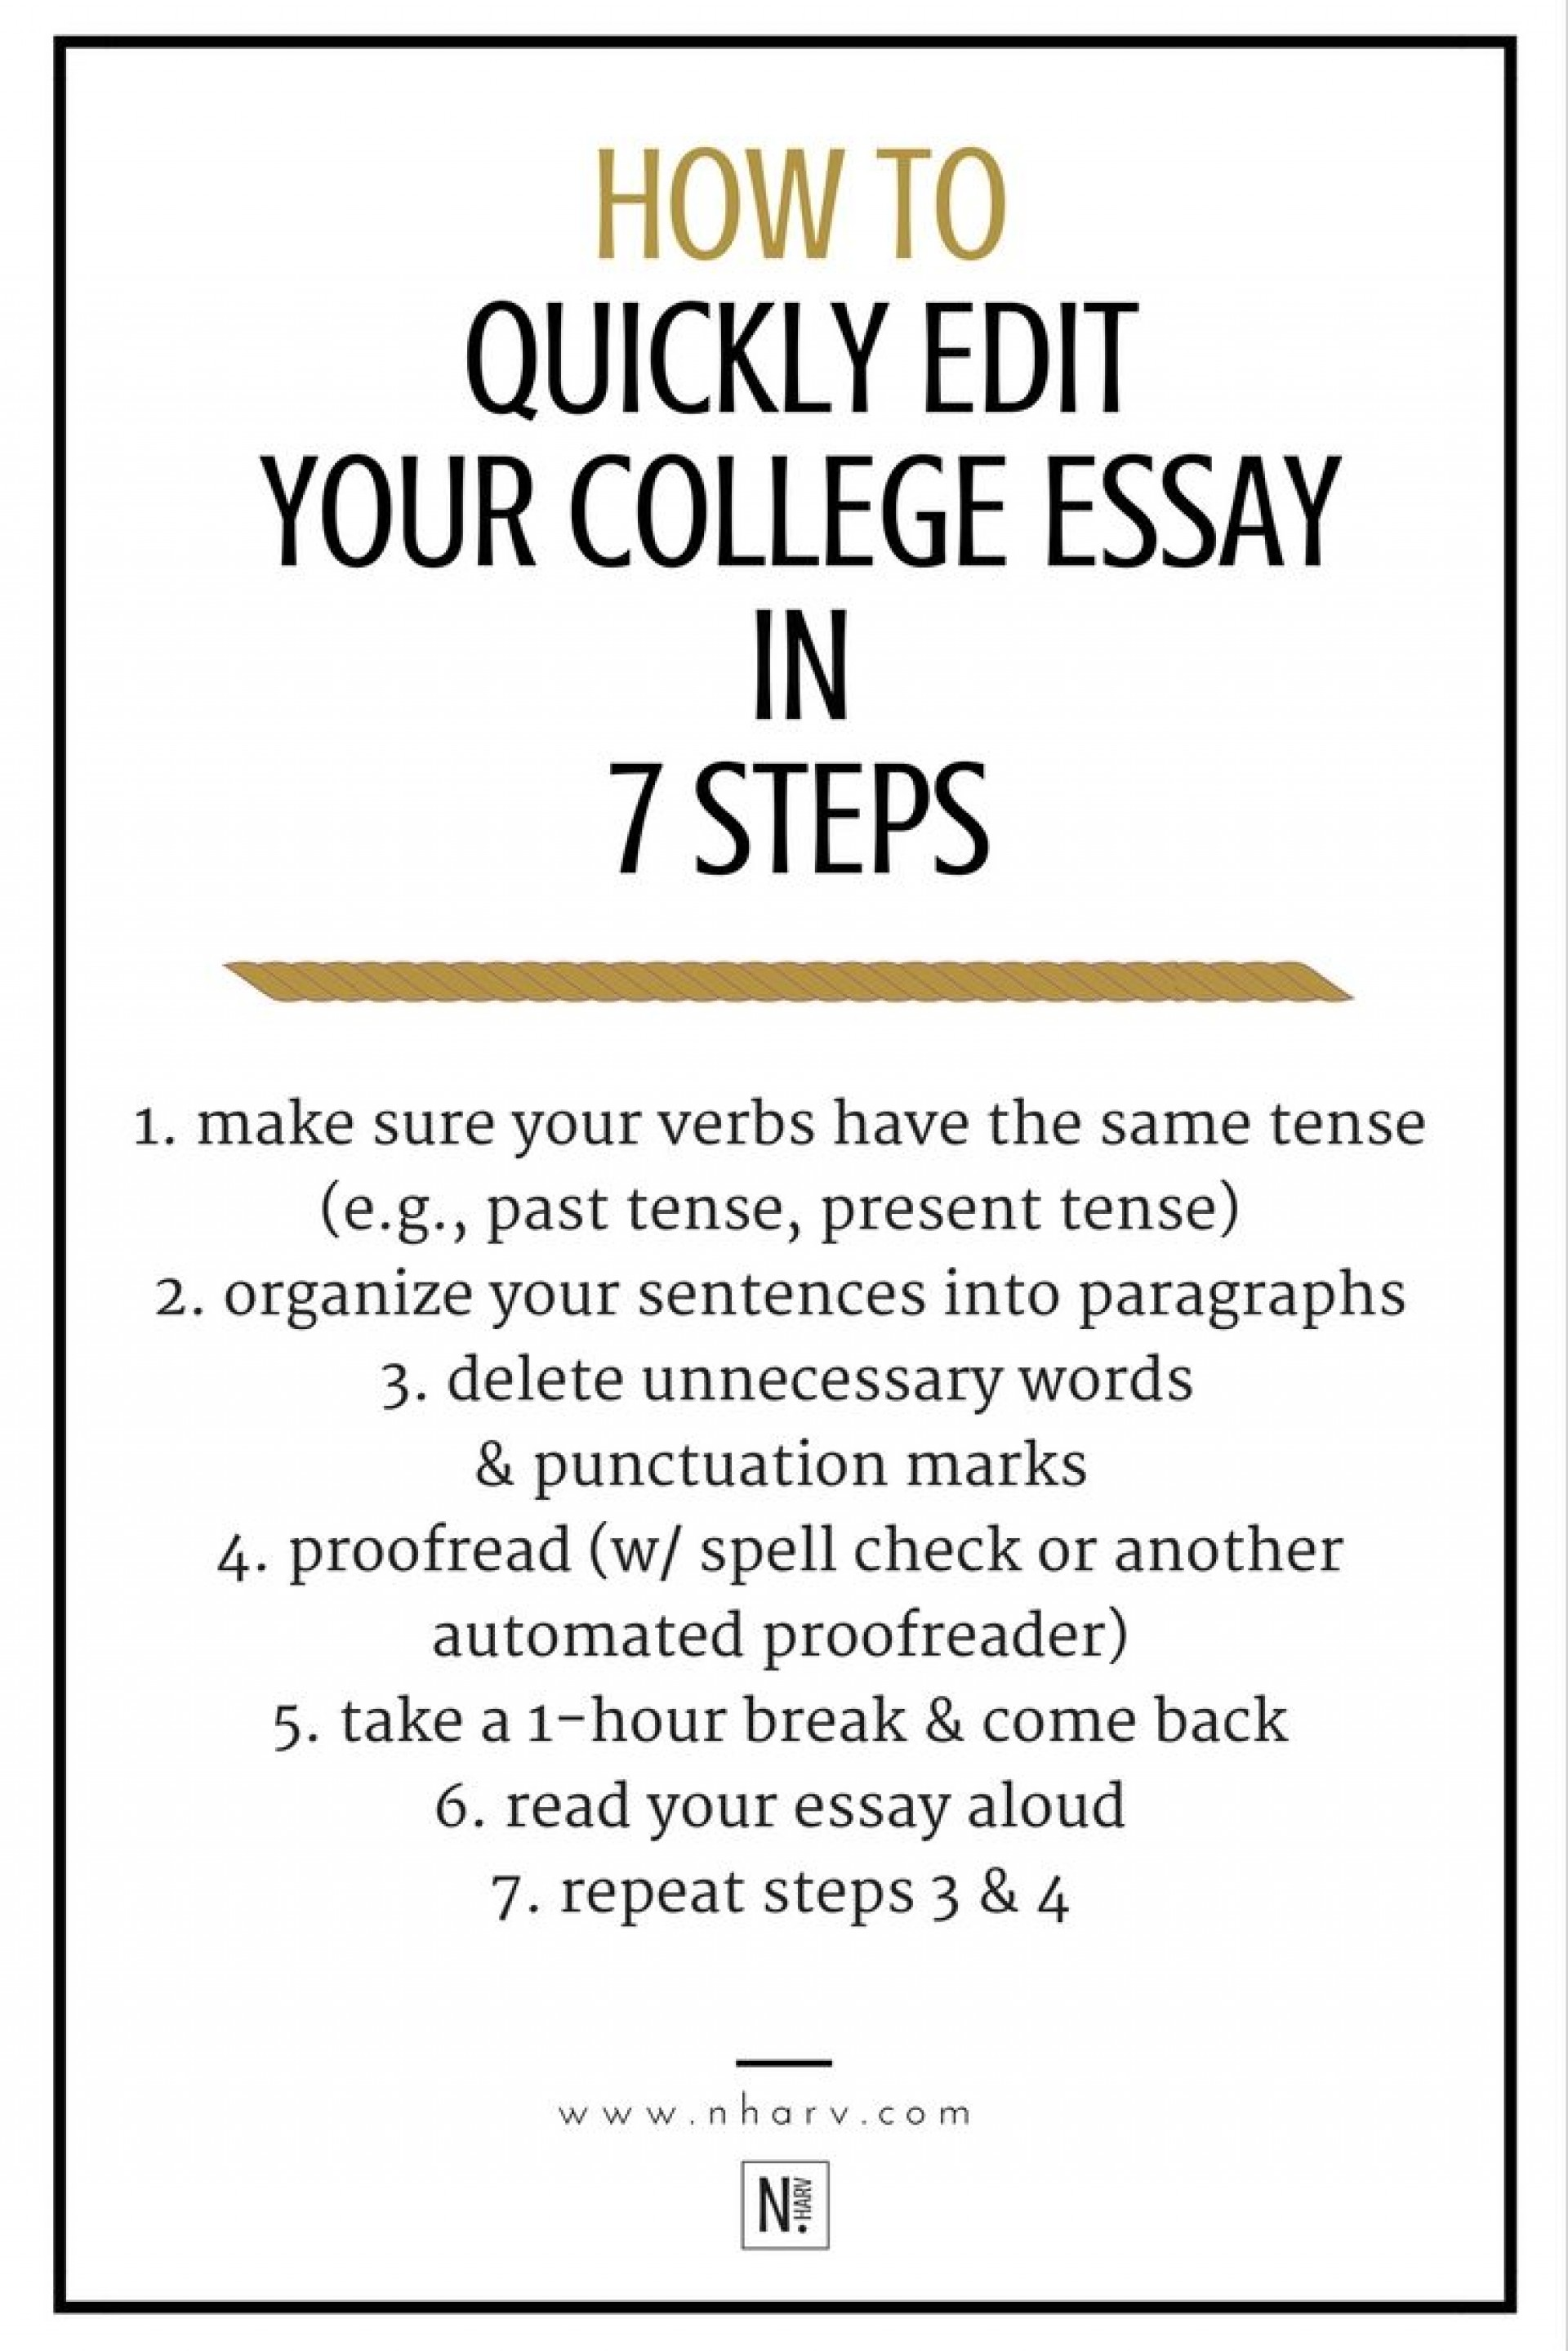 008 Essay Example College Editing Amazing Best Services Application Free Checklist 1920